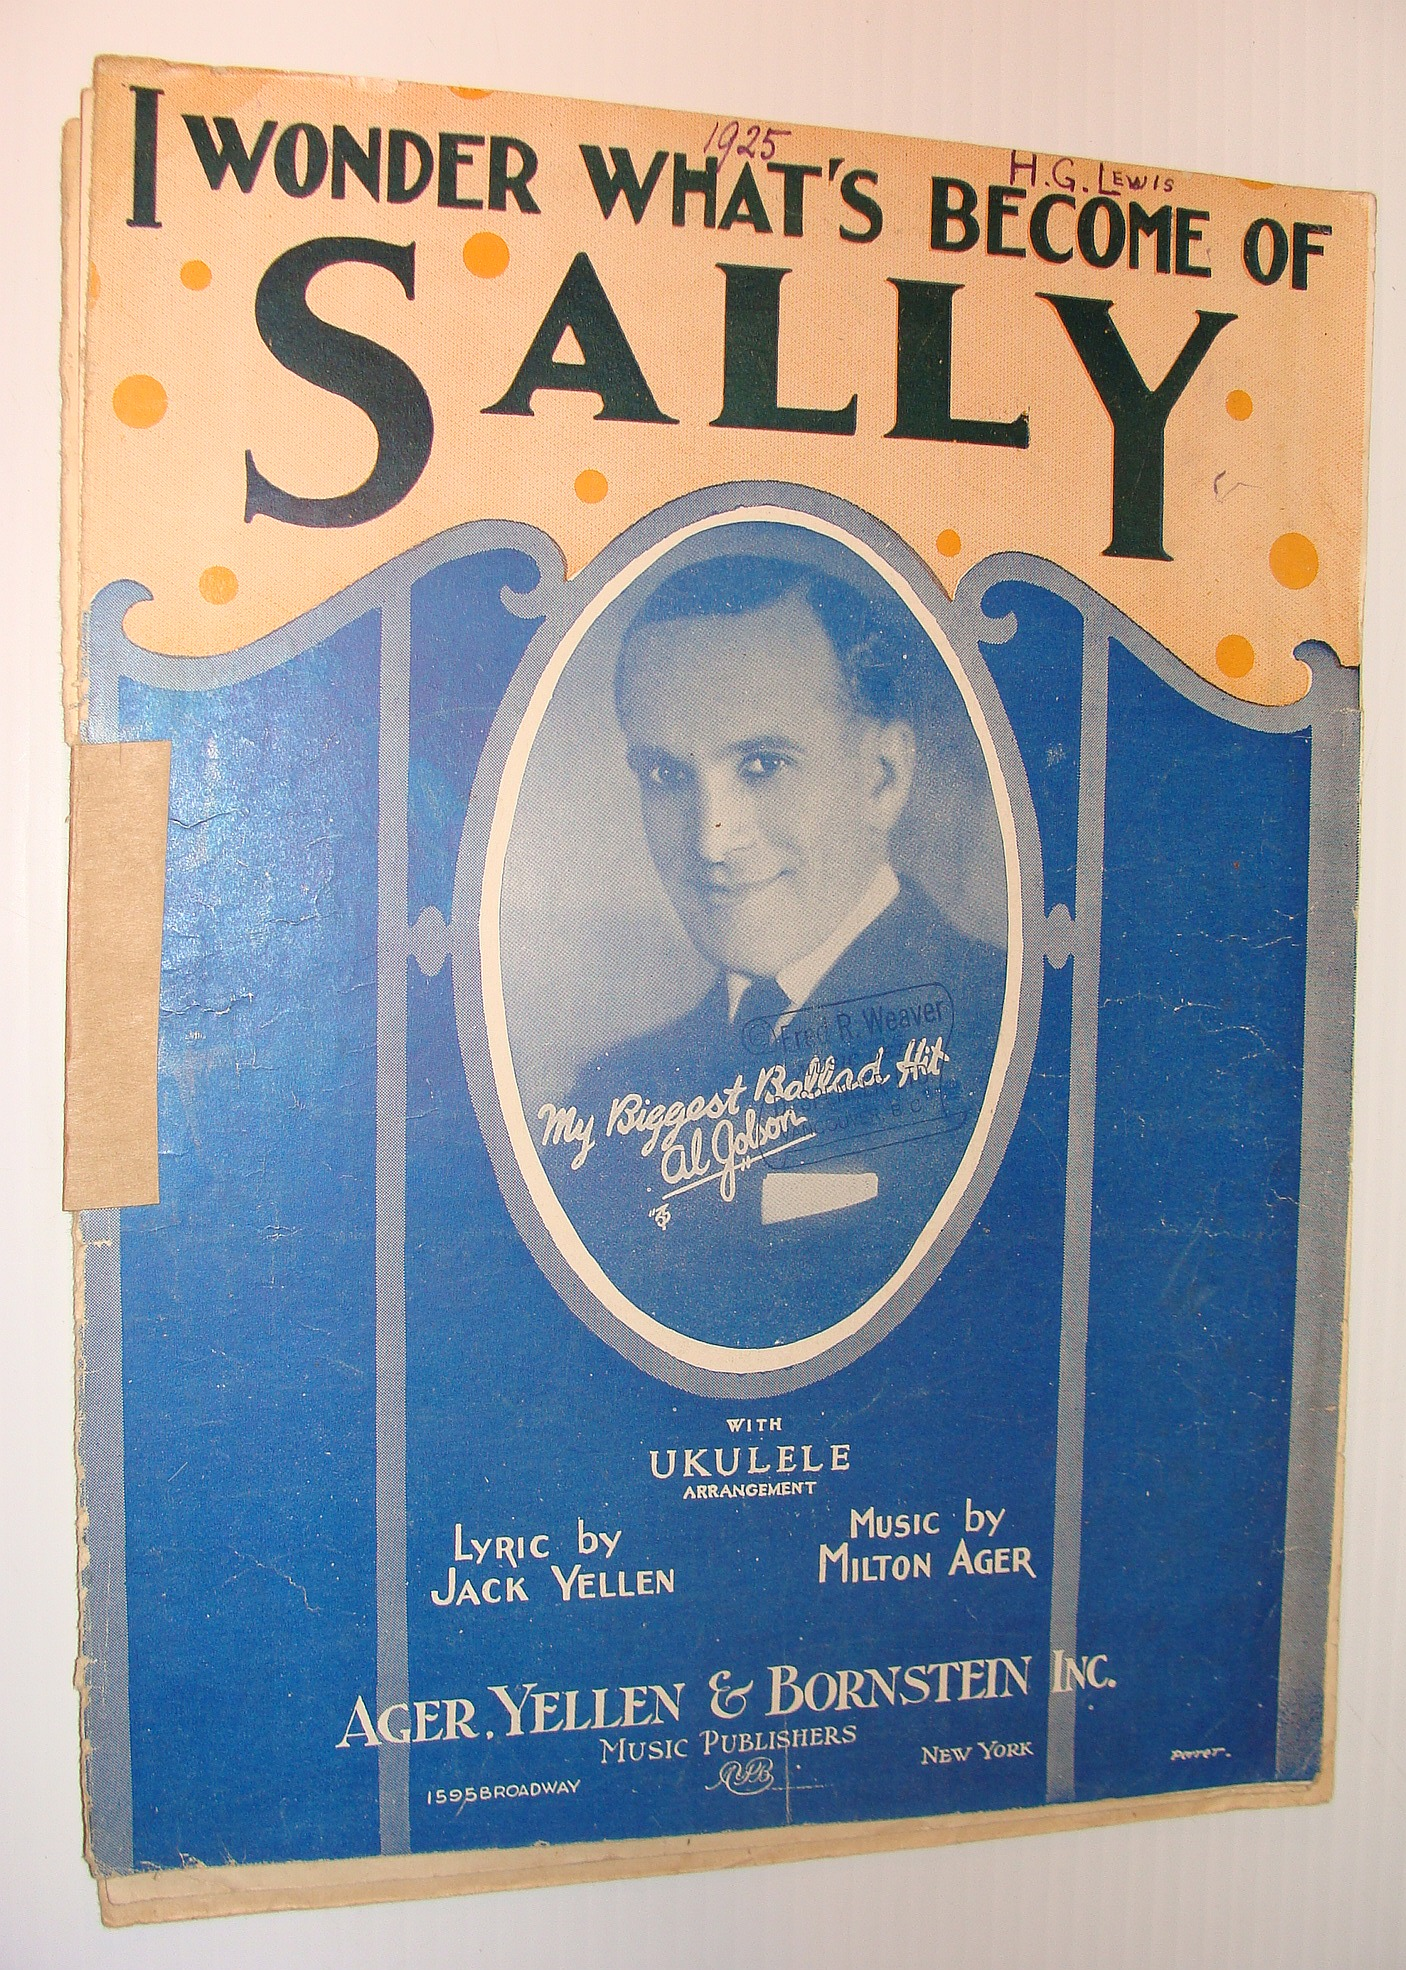 I Wonder What's Become of Sally? - Sheet Music with Ukulele Arrangement, Ager, Milton; Yellen, Jack